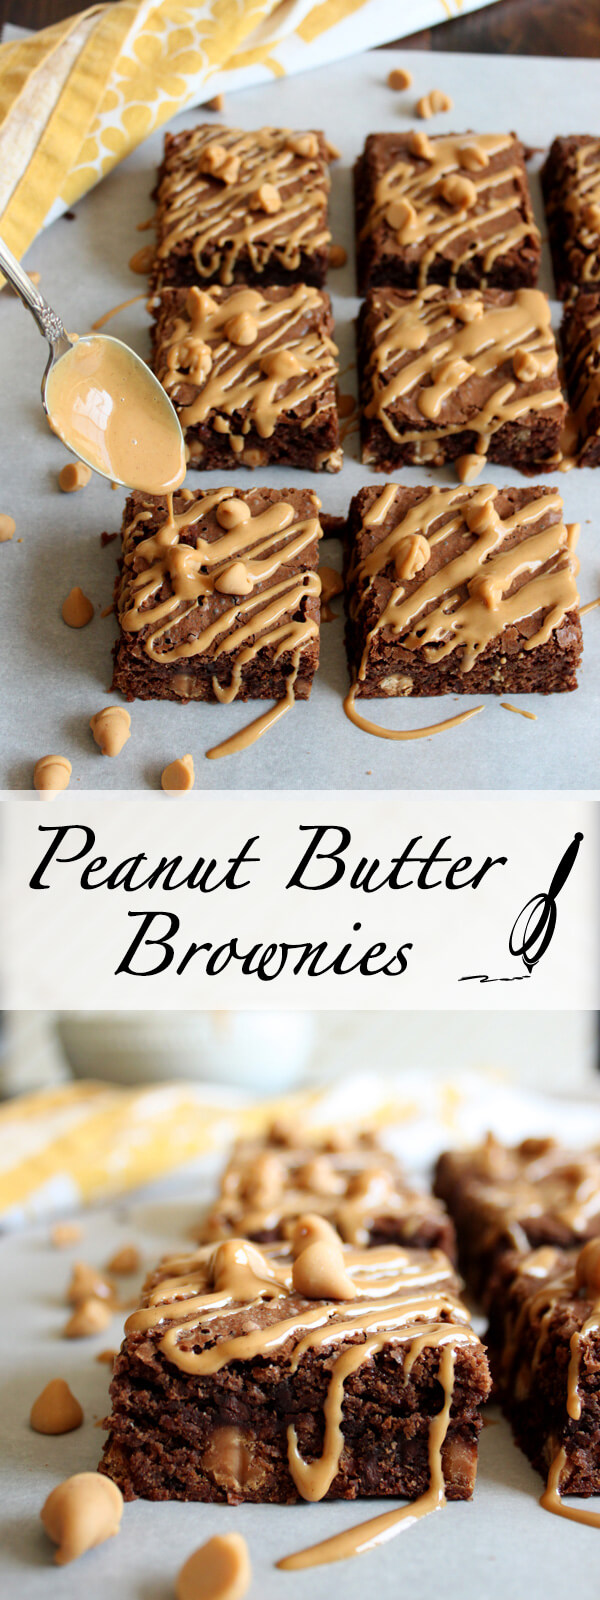 These Double Peanut Butter Brownies are rich and chewy, sweet and salty in every single bite, loaded with peanut butter chips and peanut butter drizzle. | wildwildwhisk.com